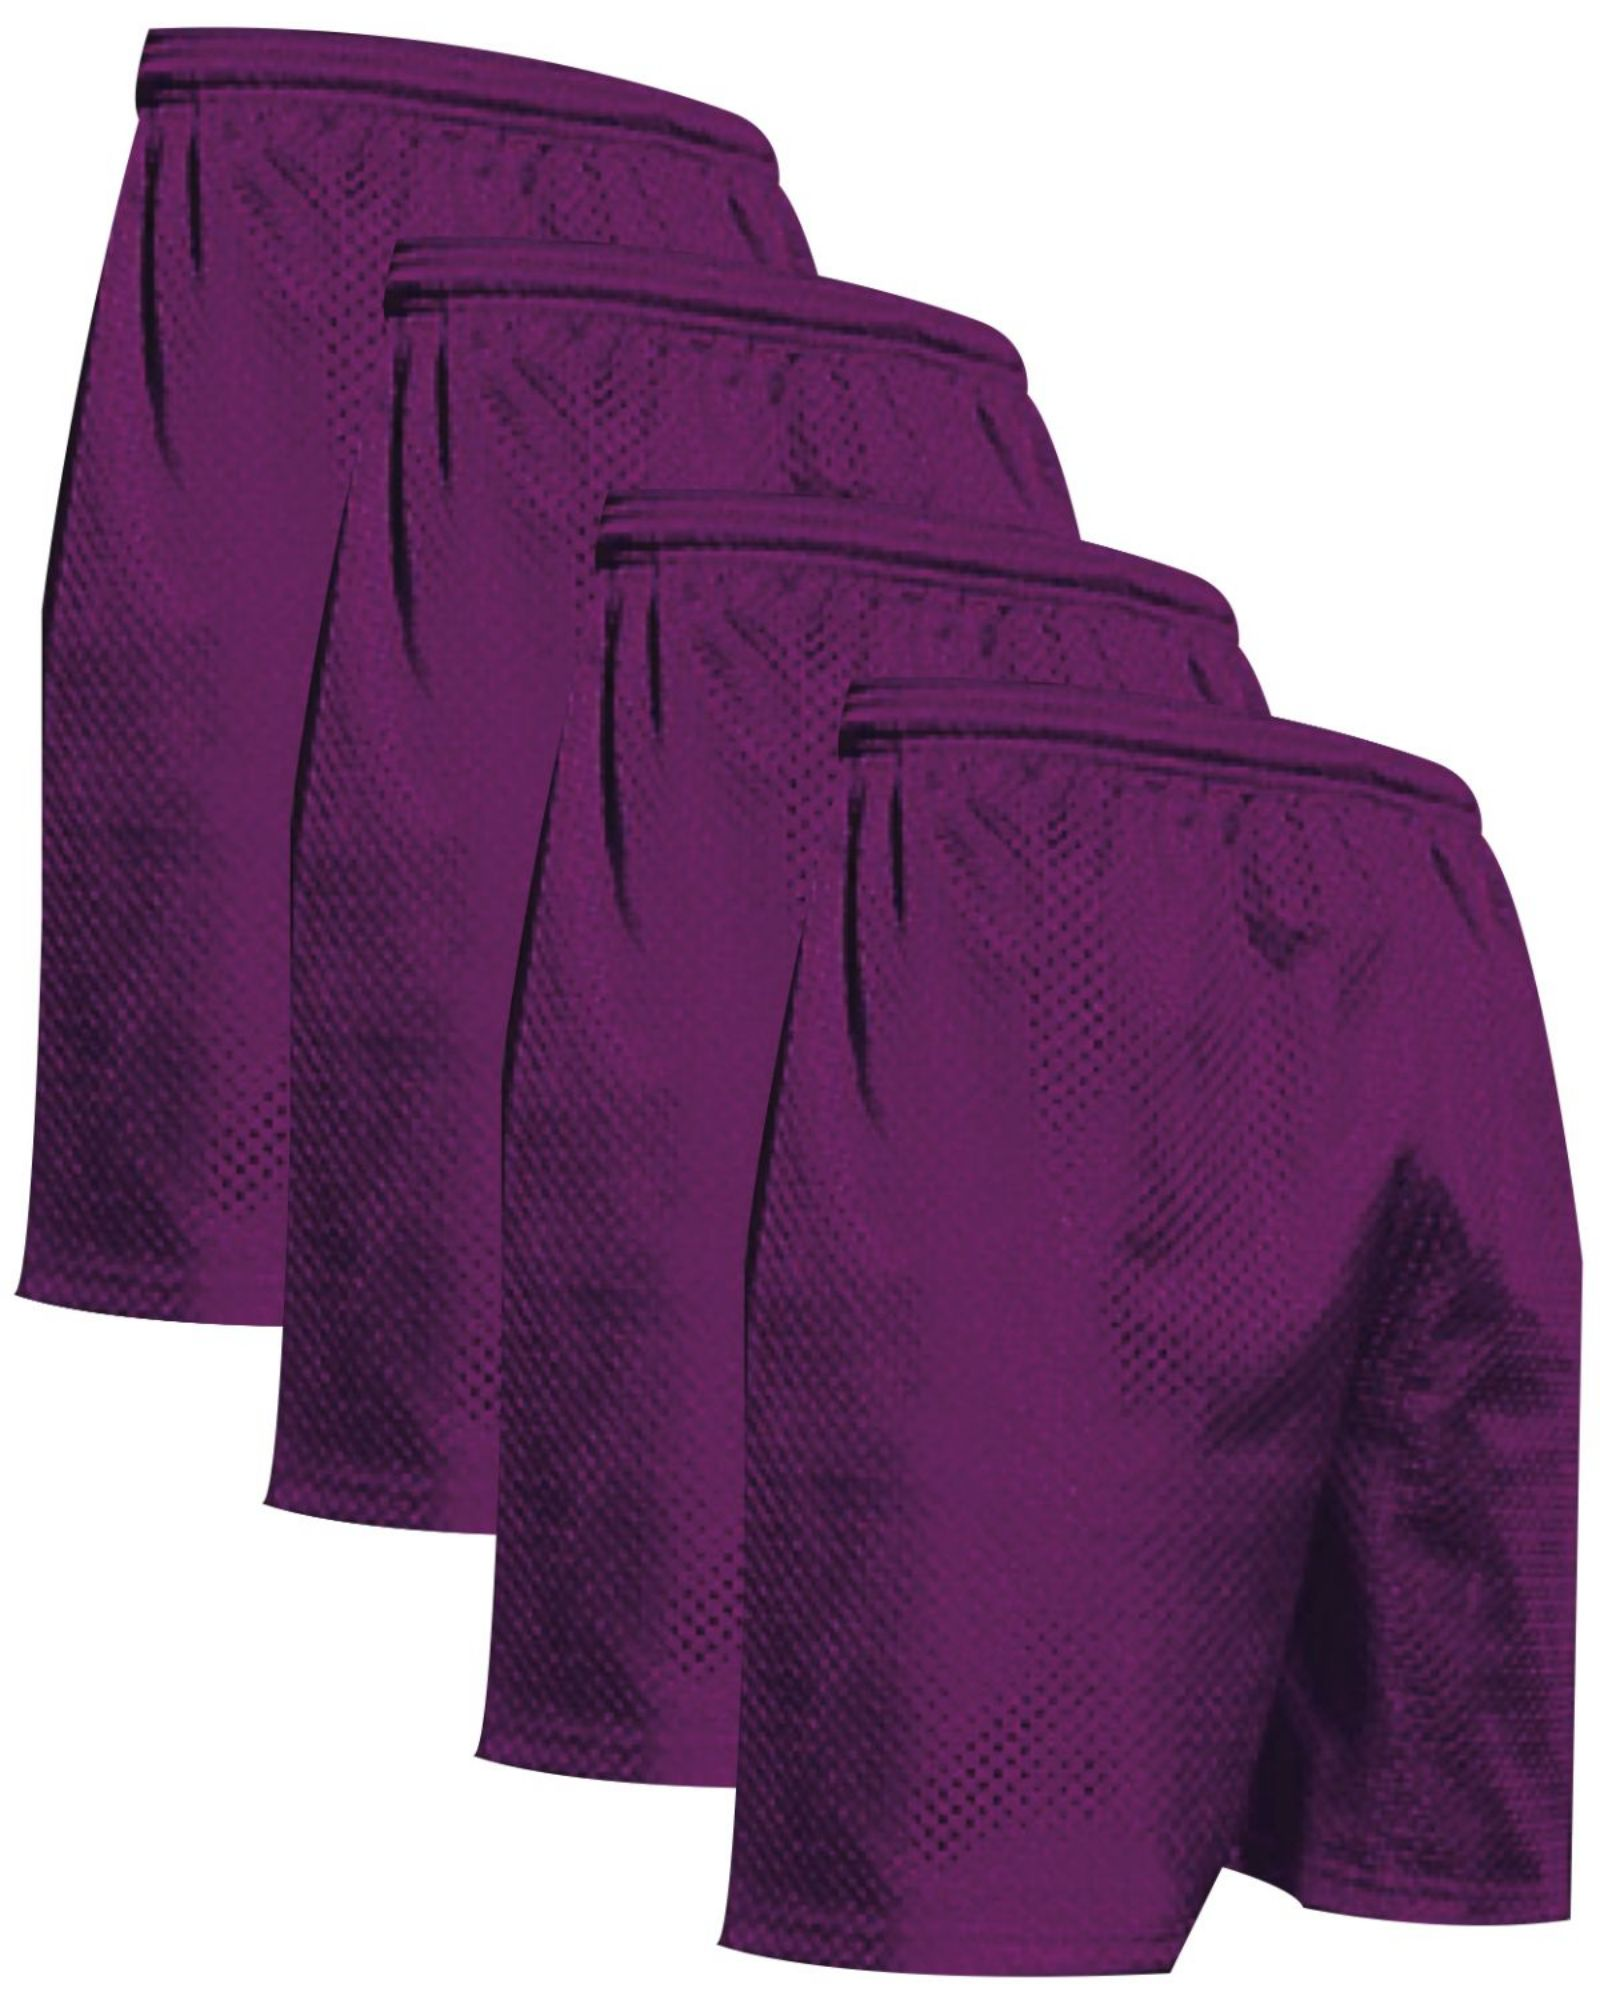 "VALUE PACK  > BUY 2 GET 2 FREE >  4 PACK > THE RAM BRAND > Men's  9"" Performance Pro Mesh Gym Champ Shorts (XS-4XL) $10 S/H is on the 1st Pack only. In this Pack: (S)(4Purple)"